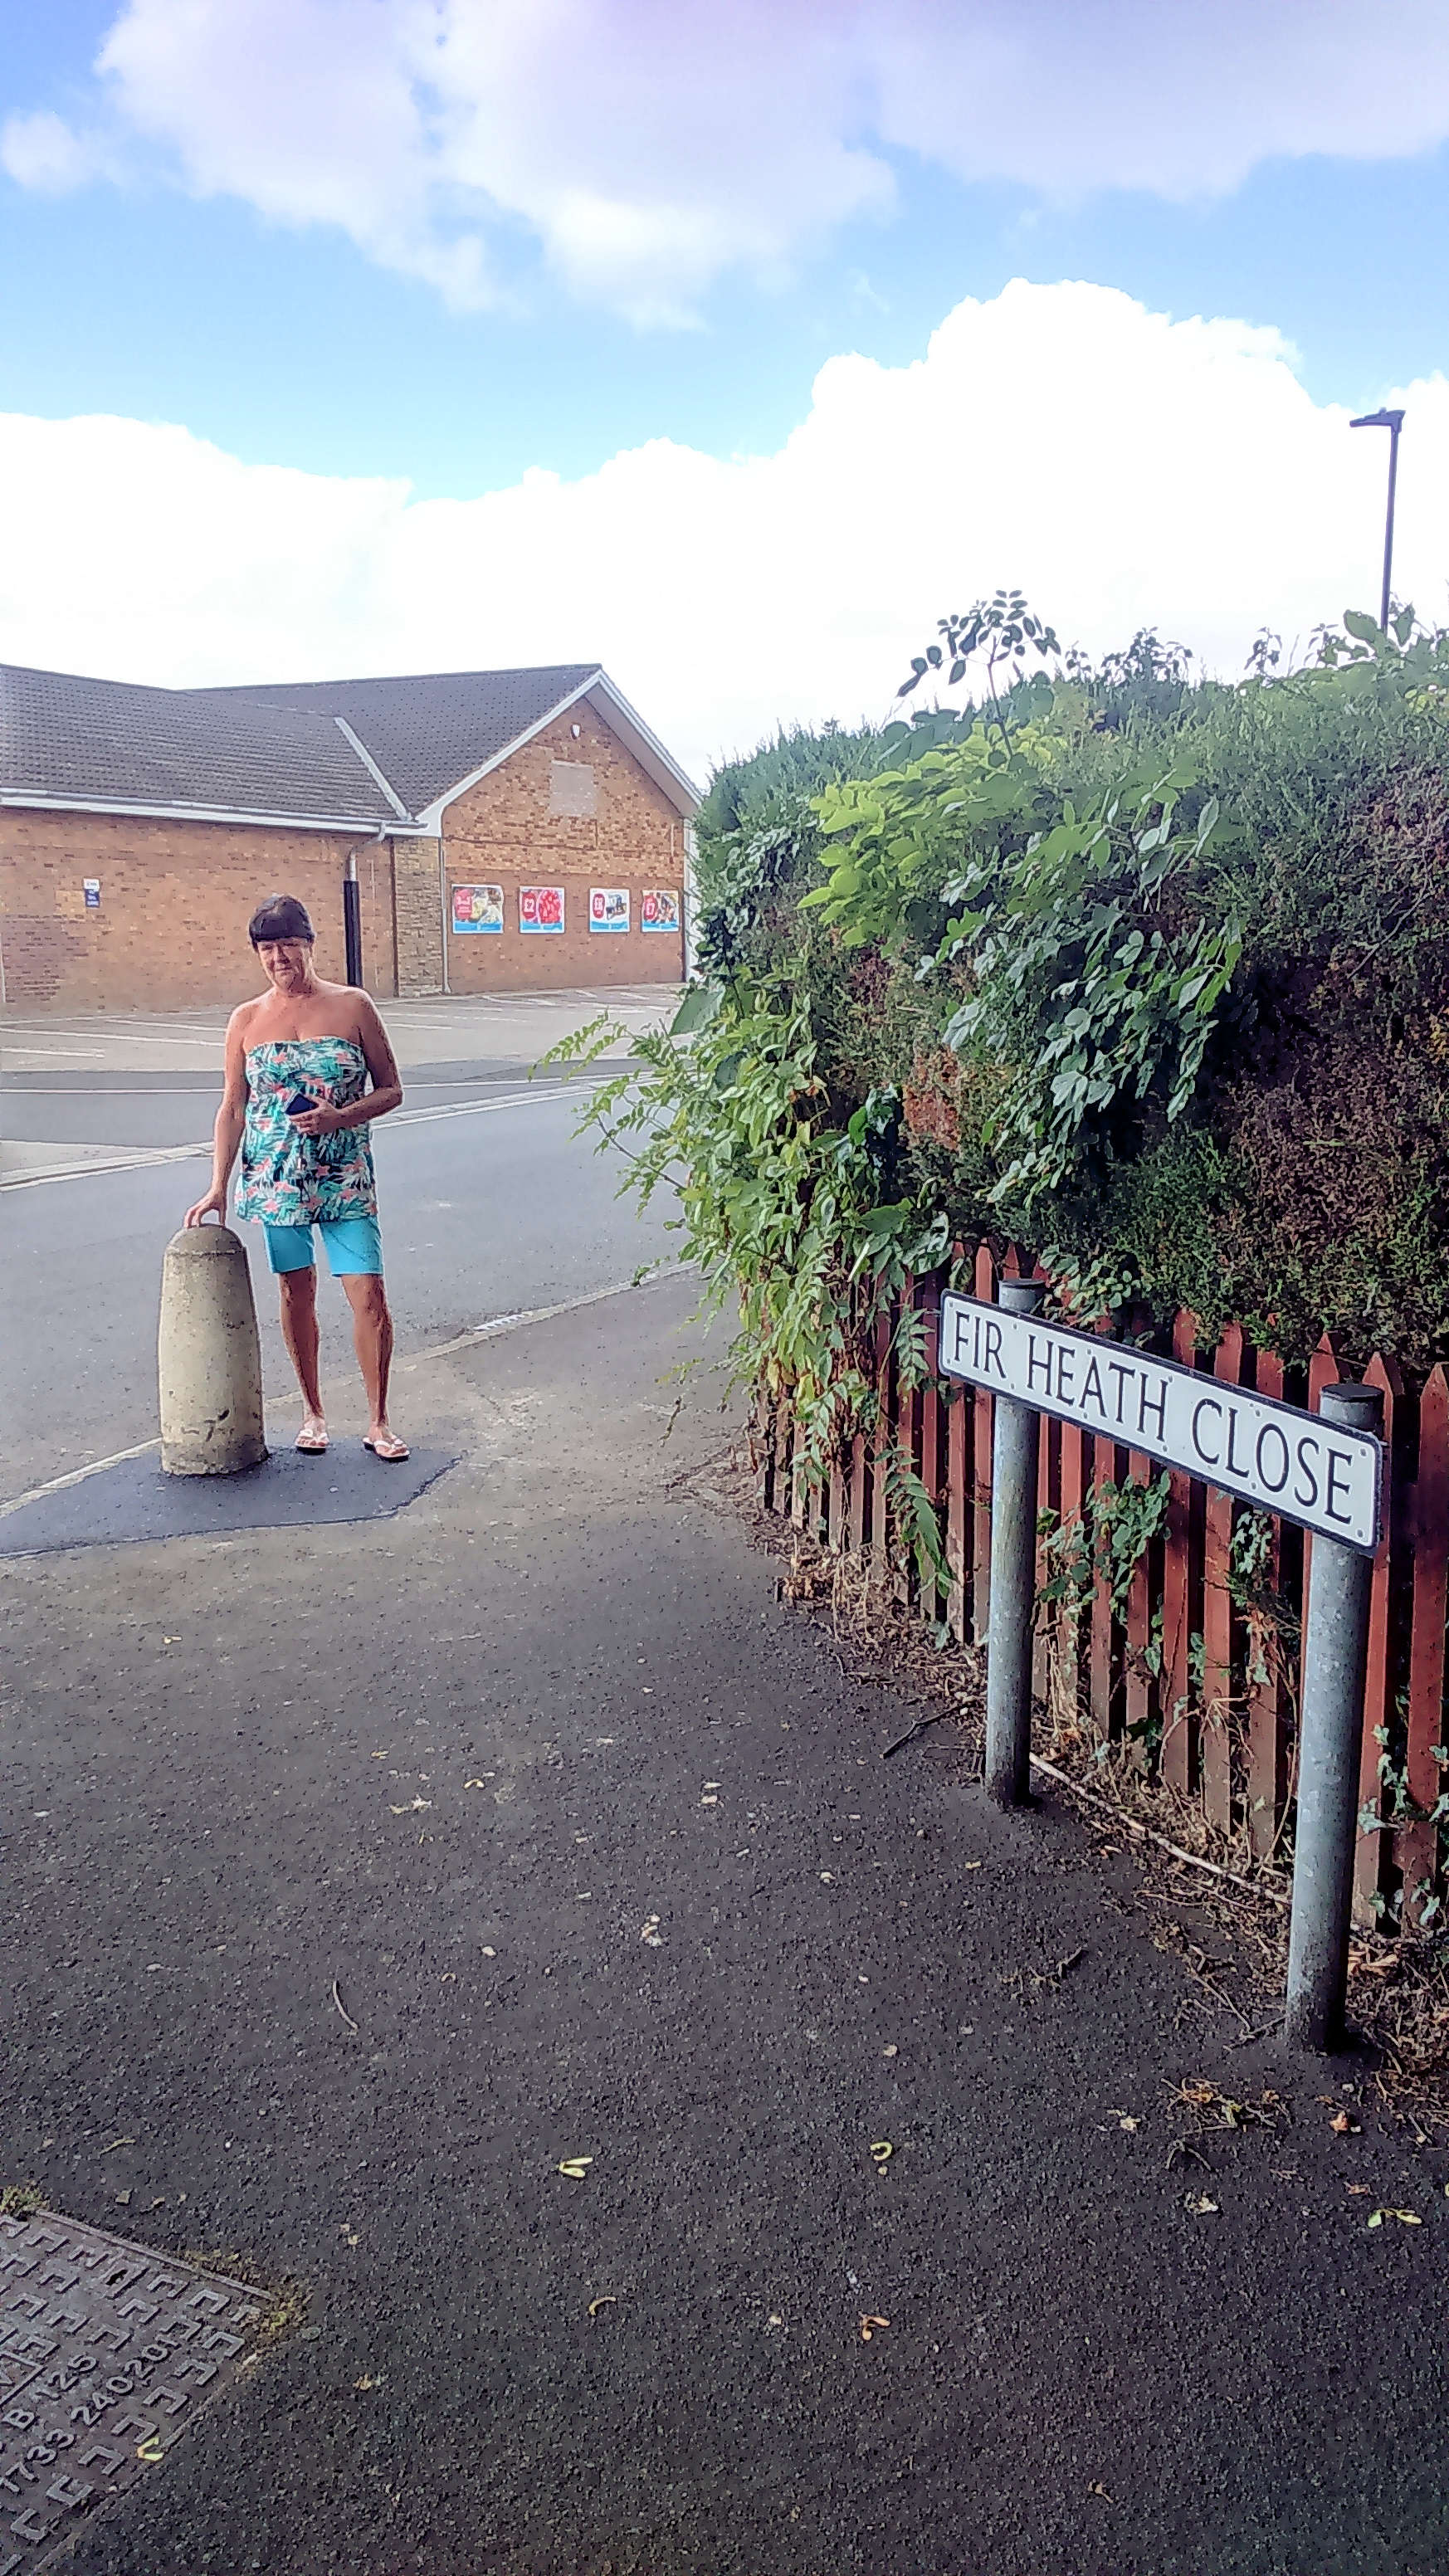 Success for Cllr Sheena Jackson who has had the damaged bollard at the entrance to Fir Heath Close repaired